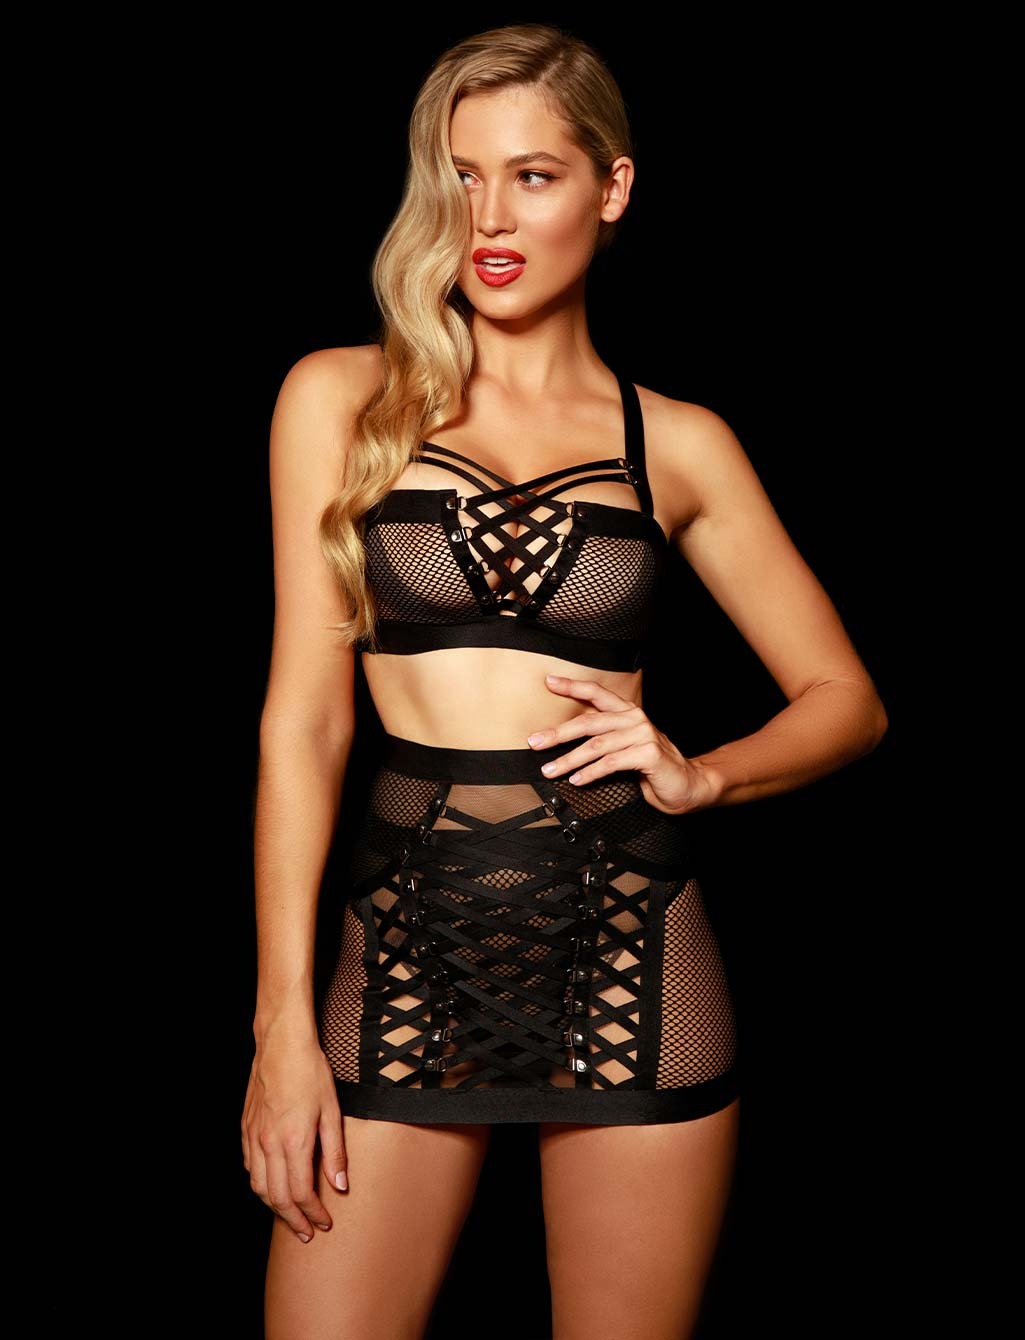 Courtney Black Suspender | Shop  Lingerie Honey Birdette